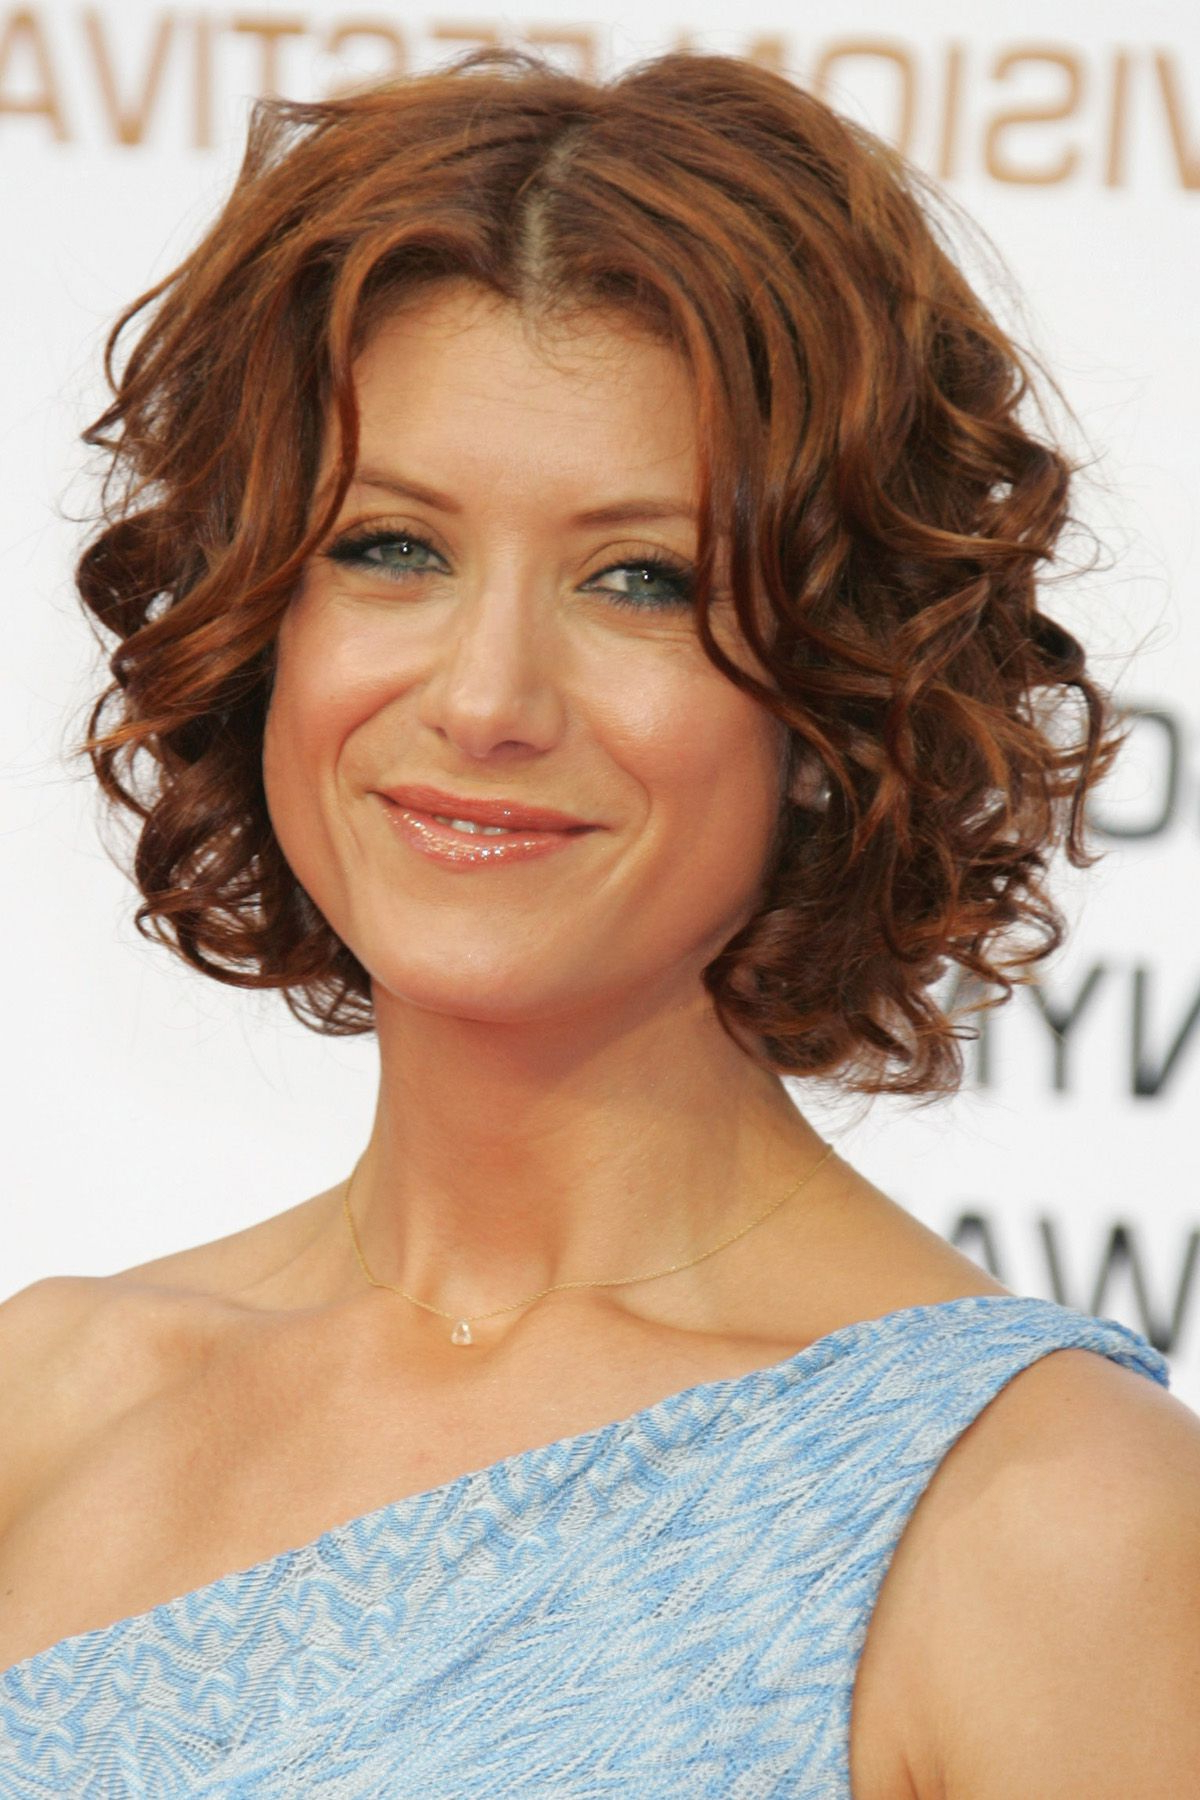 14 Best Short Curly Hairstyles For Women – Short Haircuts For Curly Hair In Curly Hair Short Hairstyles (View 3 of 25)